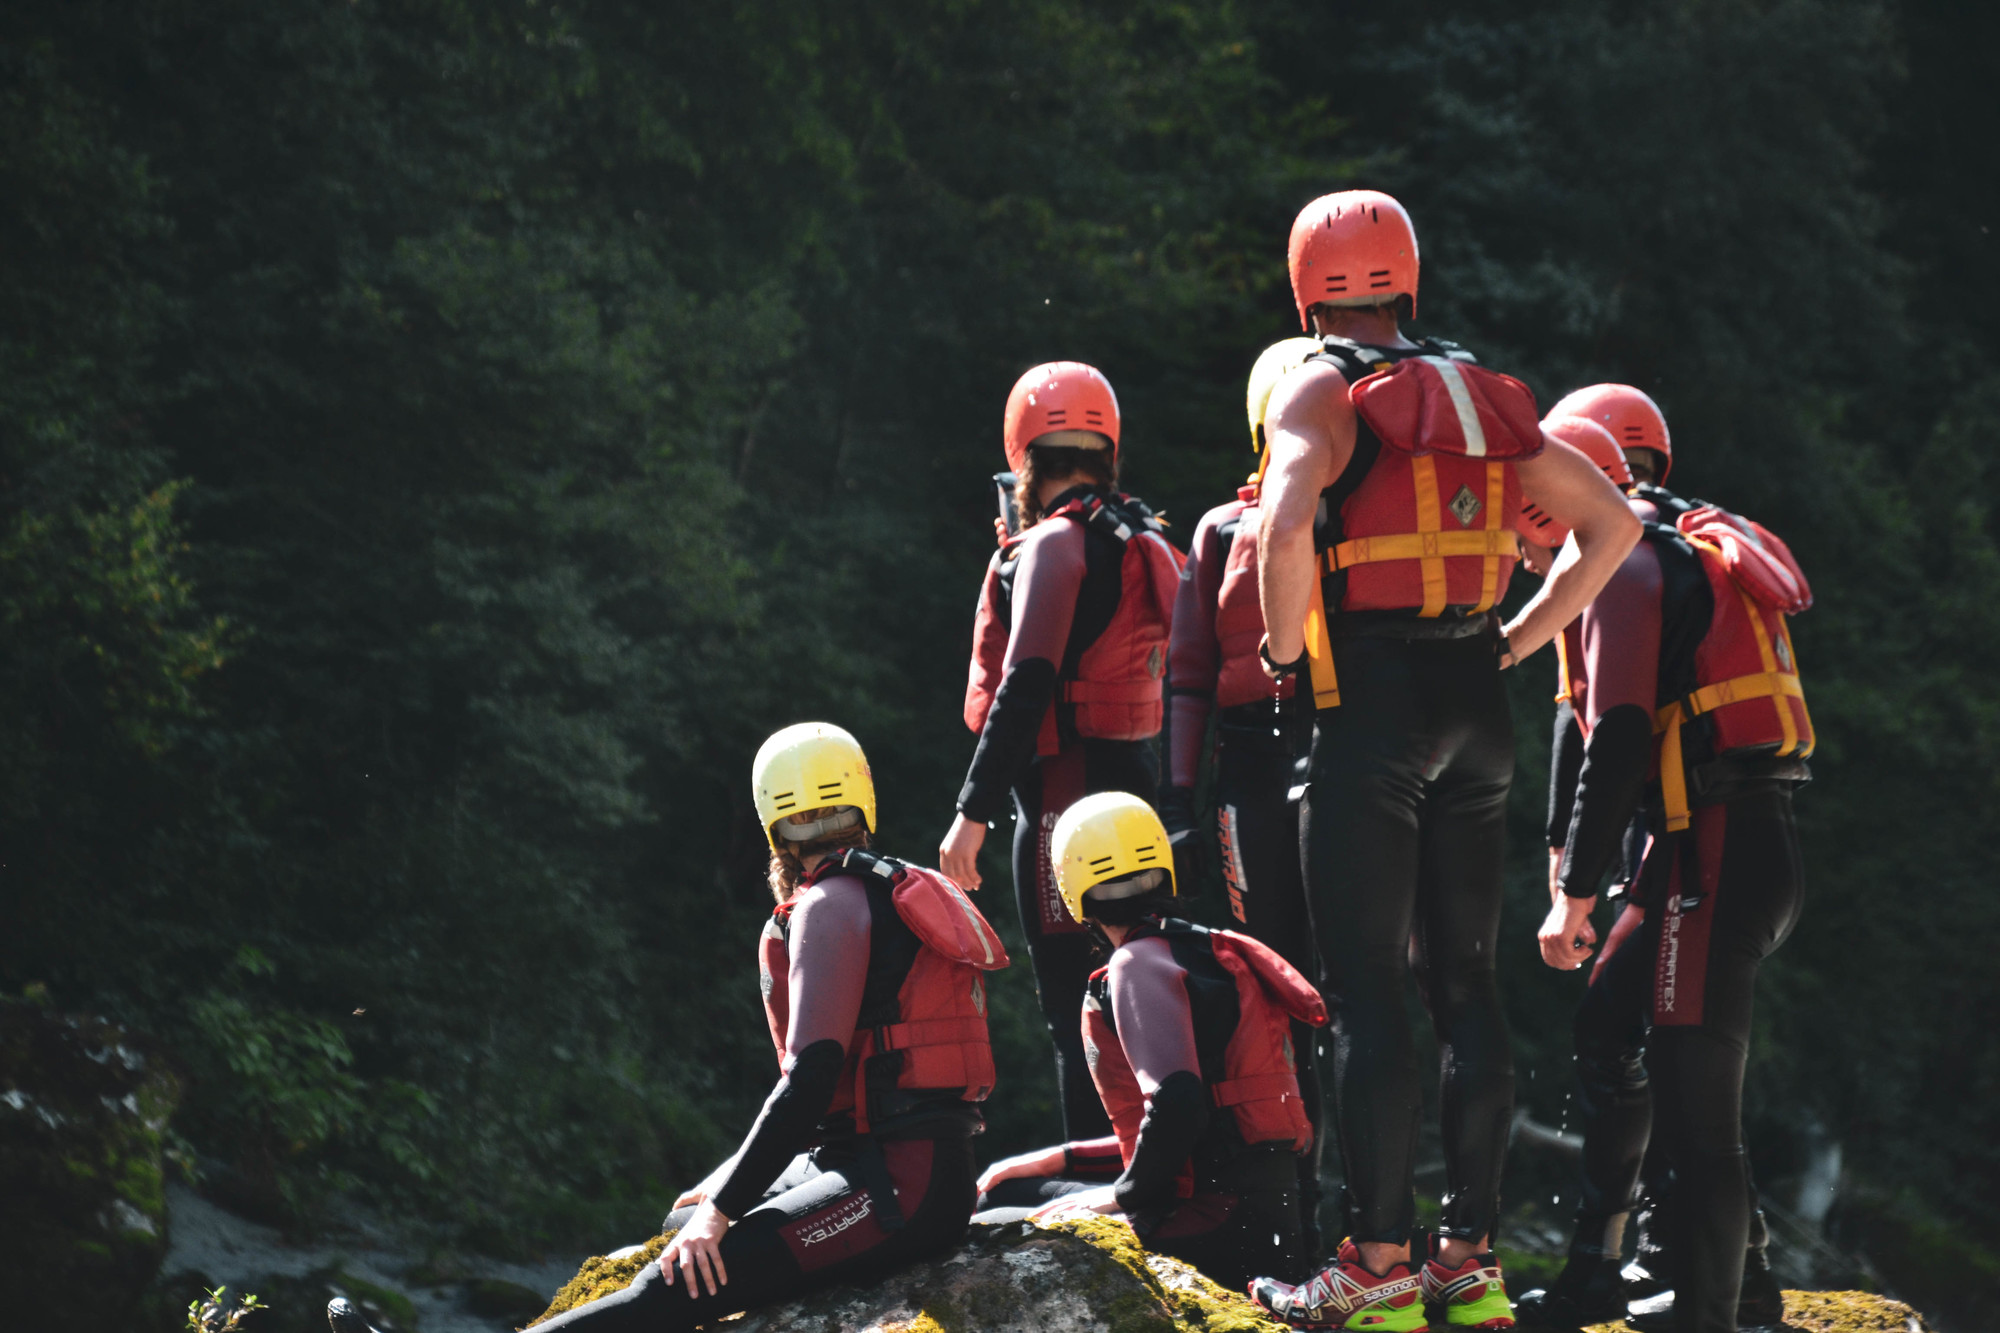 Alpes rafting Explora project